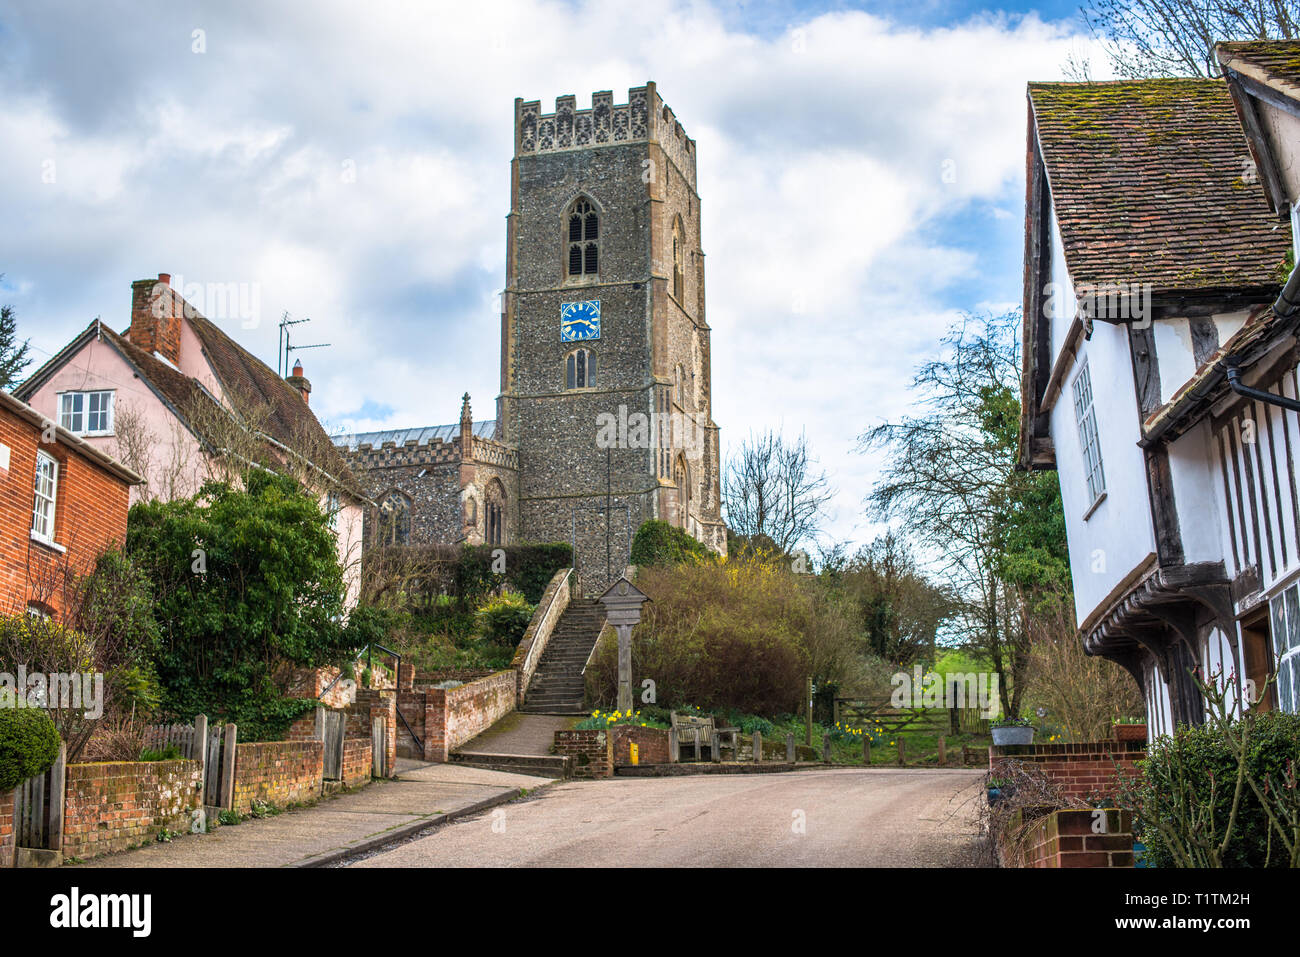 St Mary's Church at Kersey village, Suffolk, East Anglia, England, UK. - Stock Image